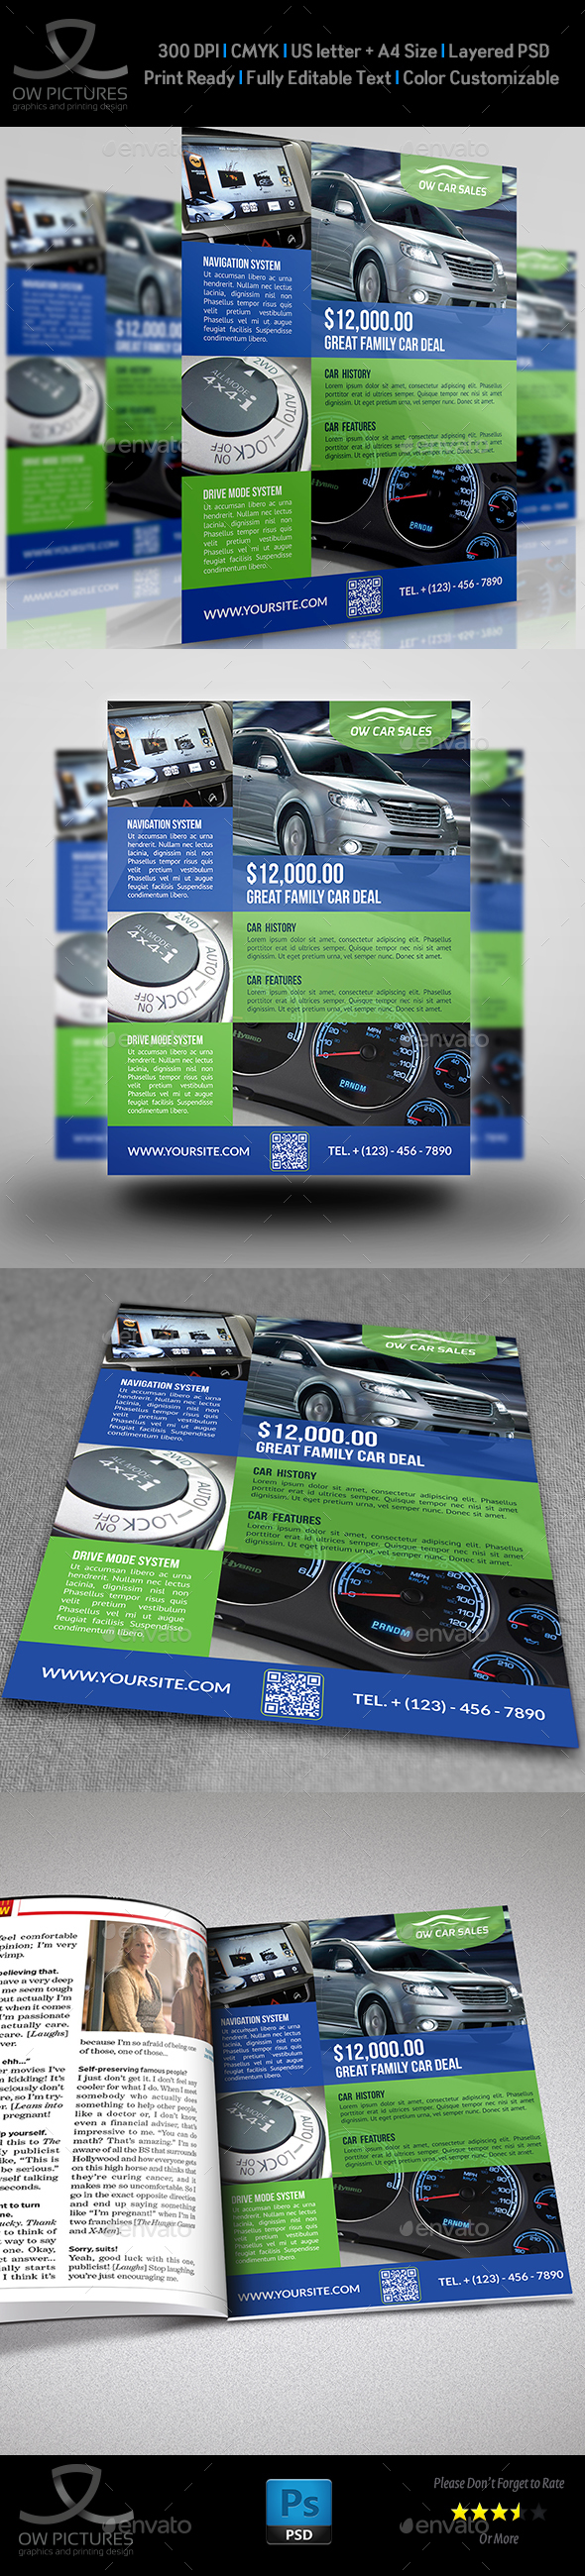 Car For Sale Flyer Template Vo.2   Flyers Print Templates  Car For Sale Flyer Template